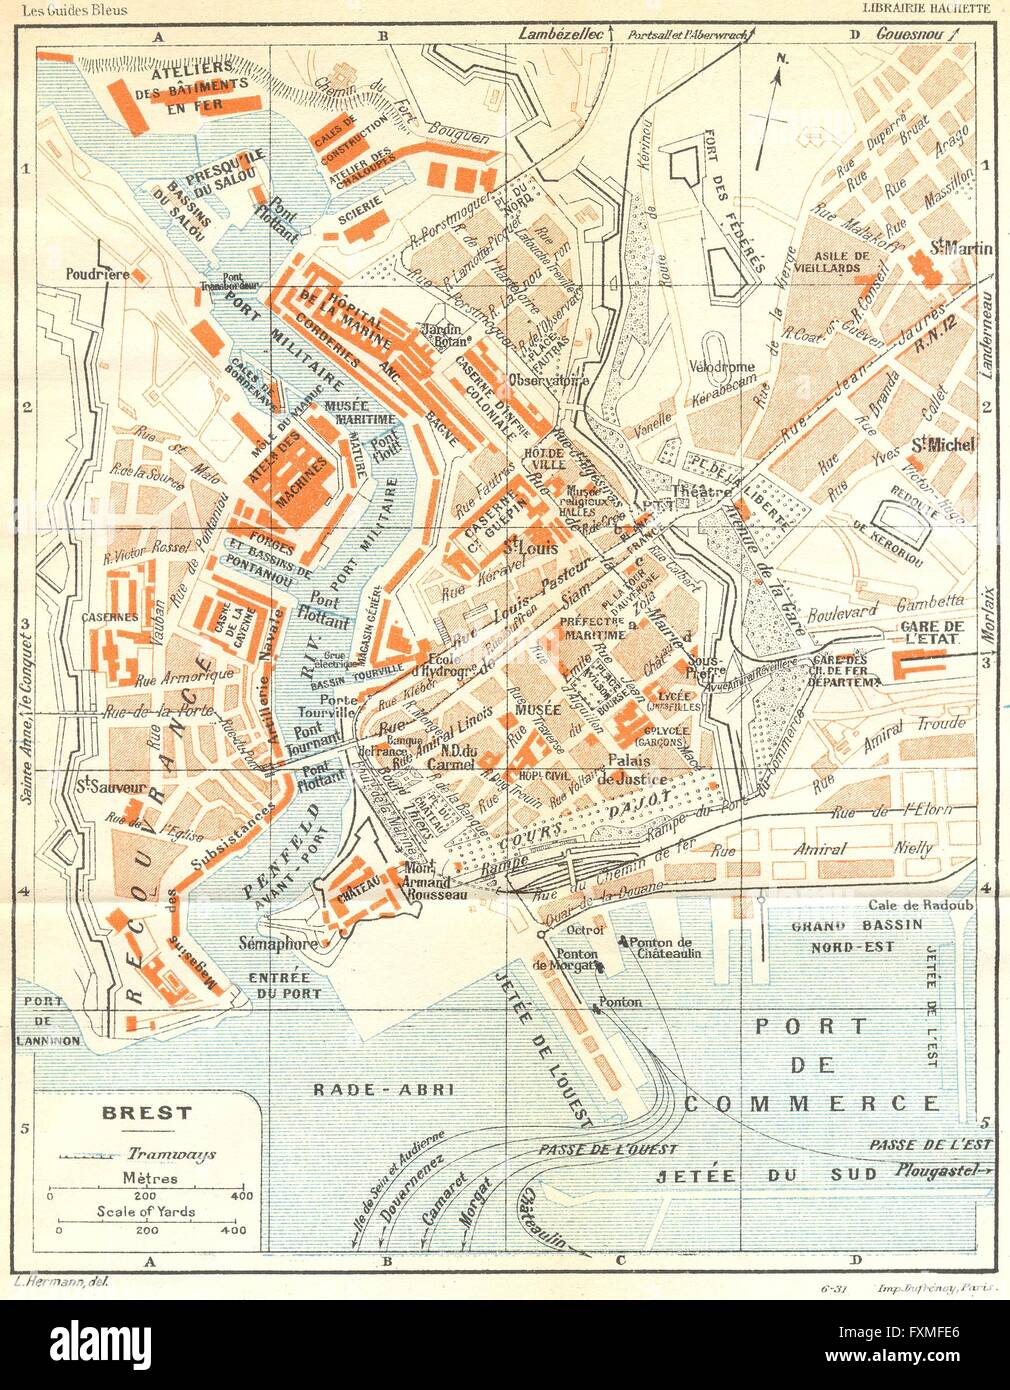 FRANCE Brest 1932 vintage map Stock Photo Royalty Free Image